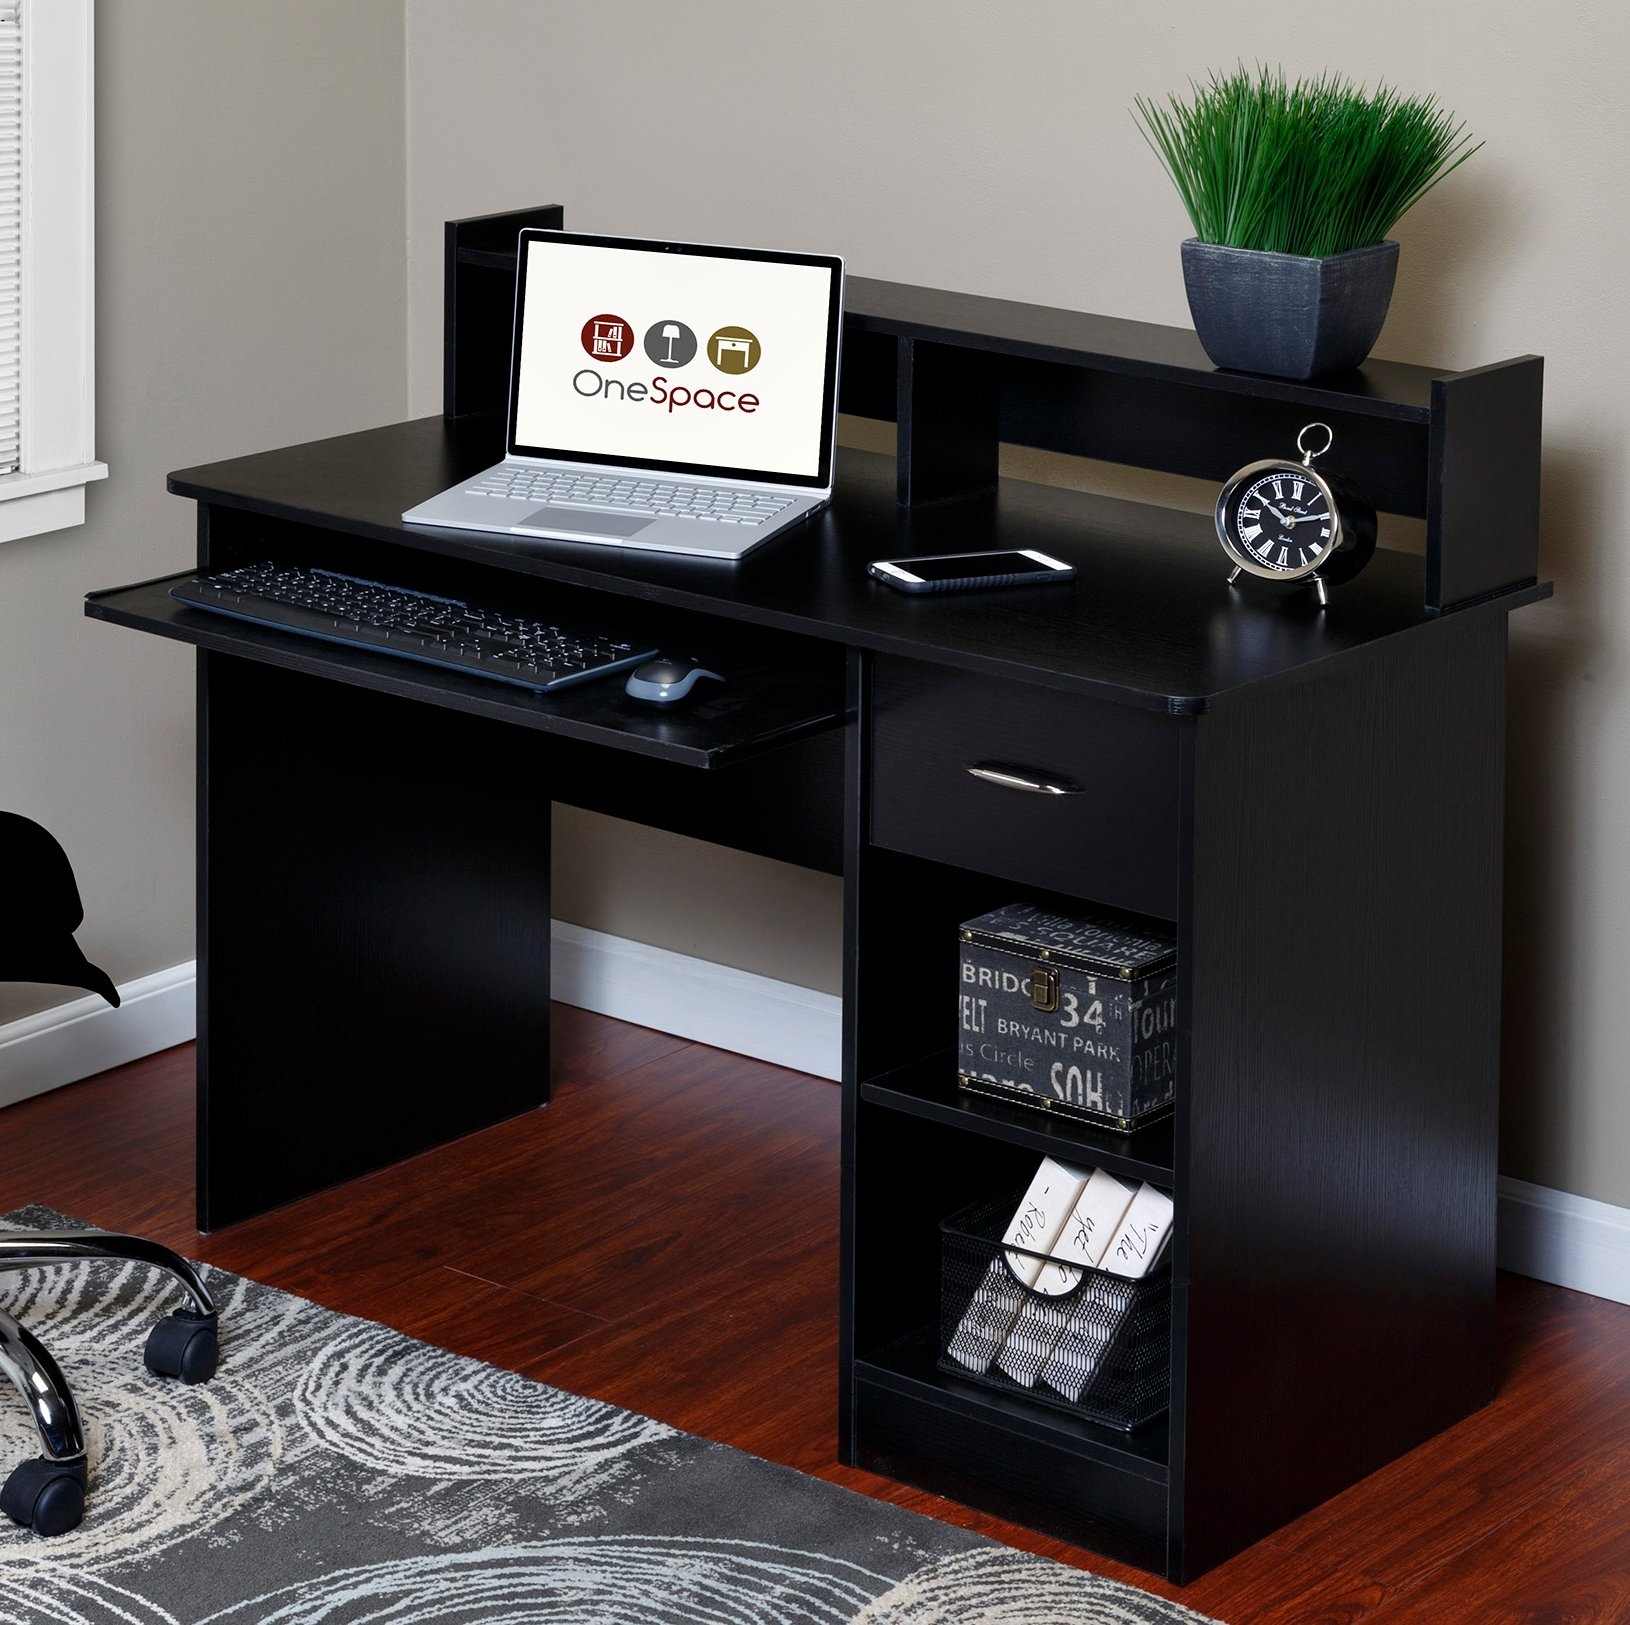 OneSpace 50-LD0105 Essential Computer Desk, Hutch with Pull-Out Keyboard, Black